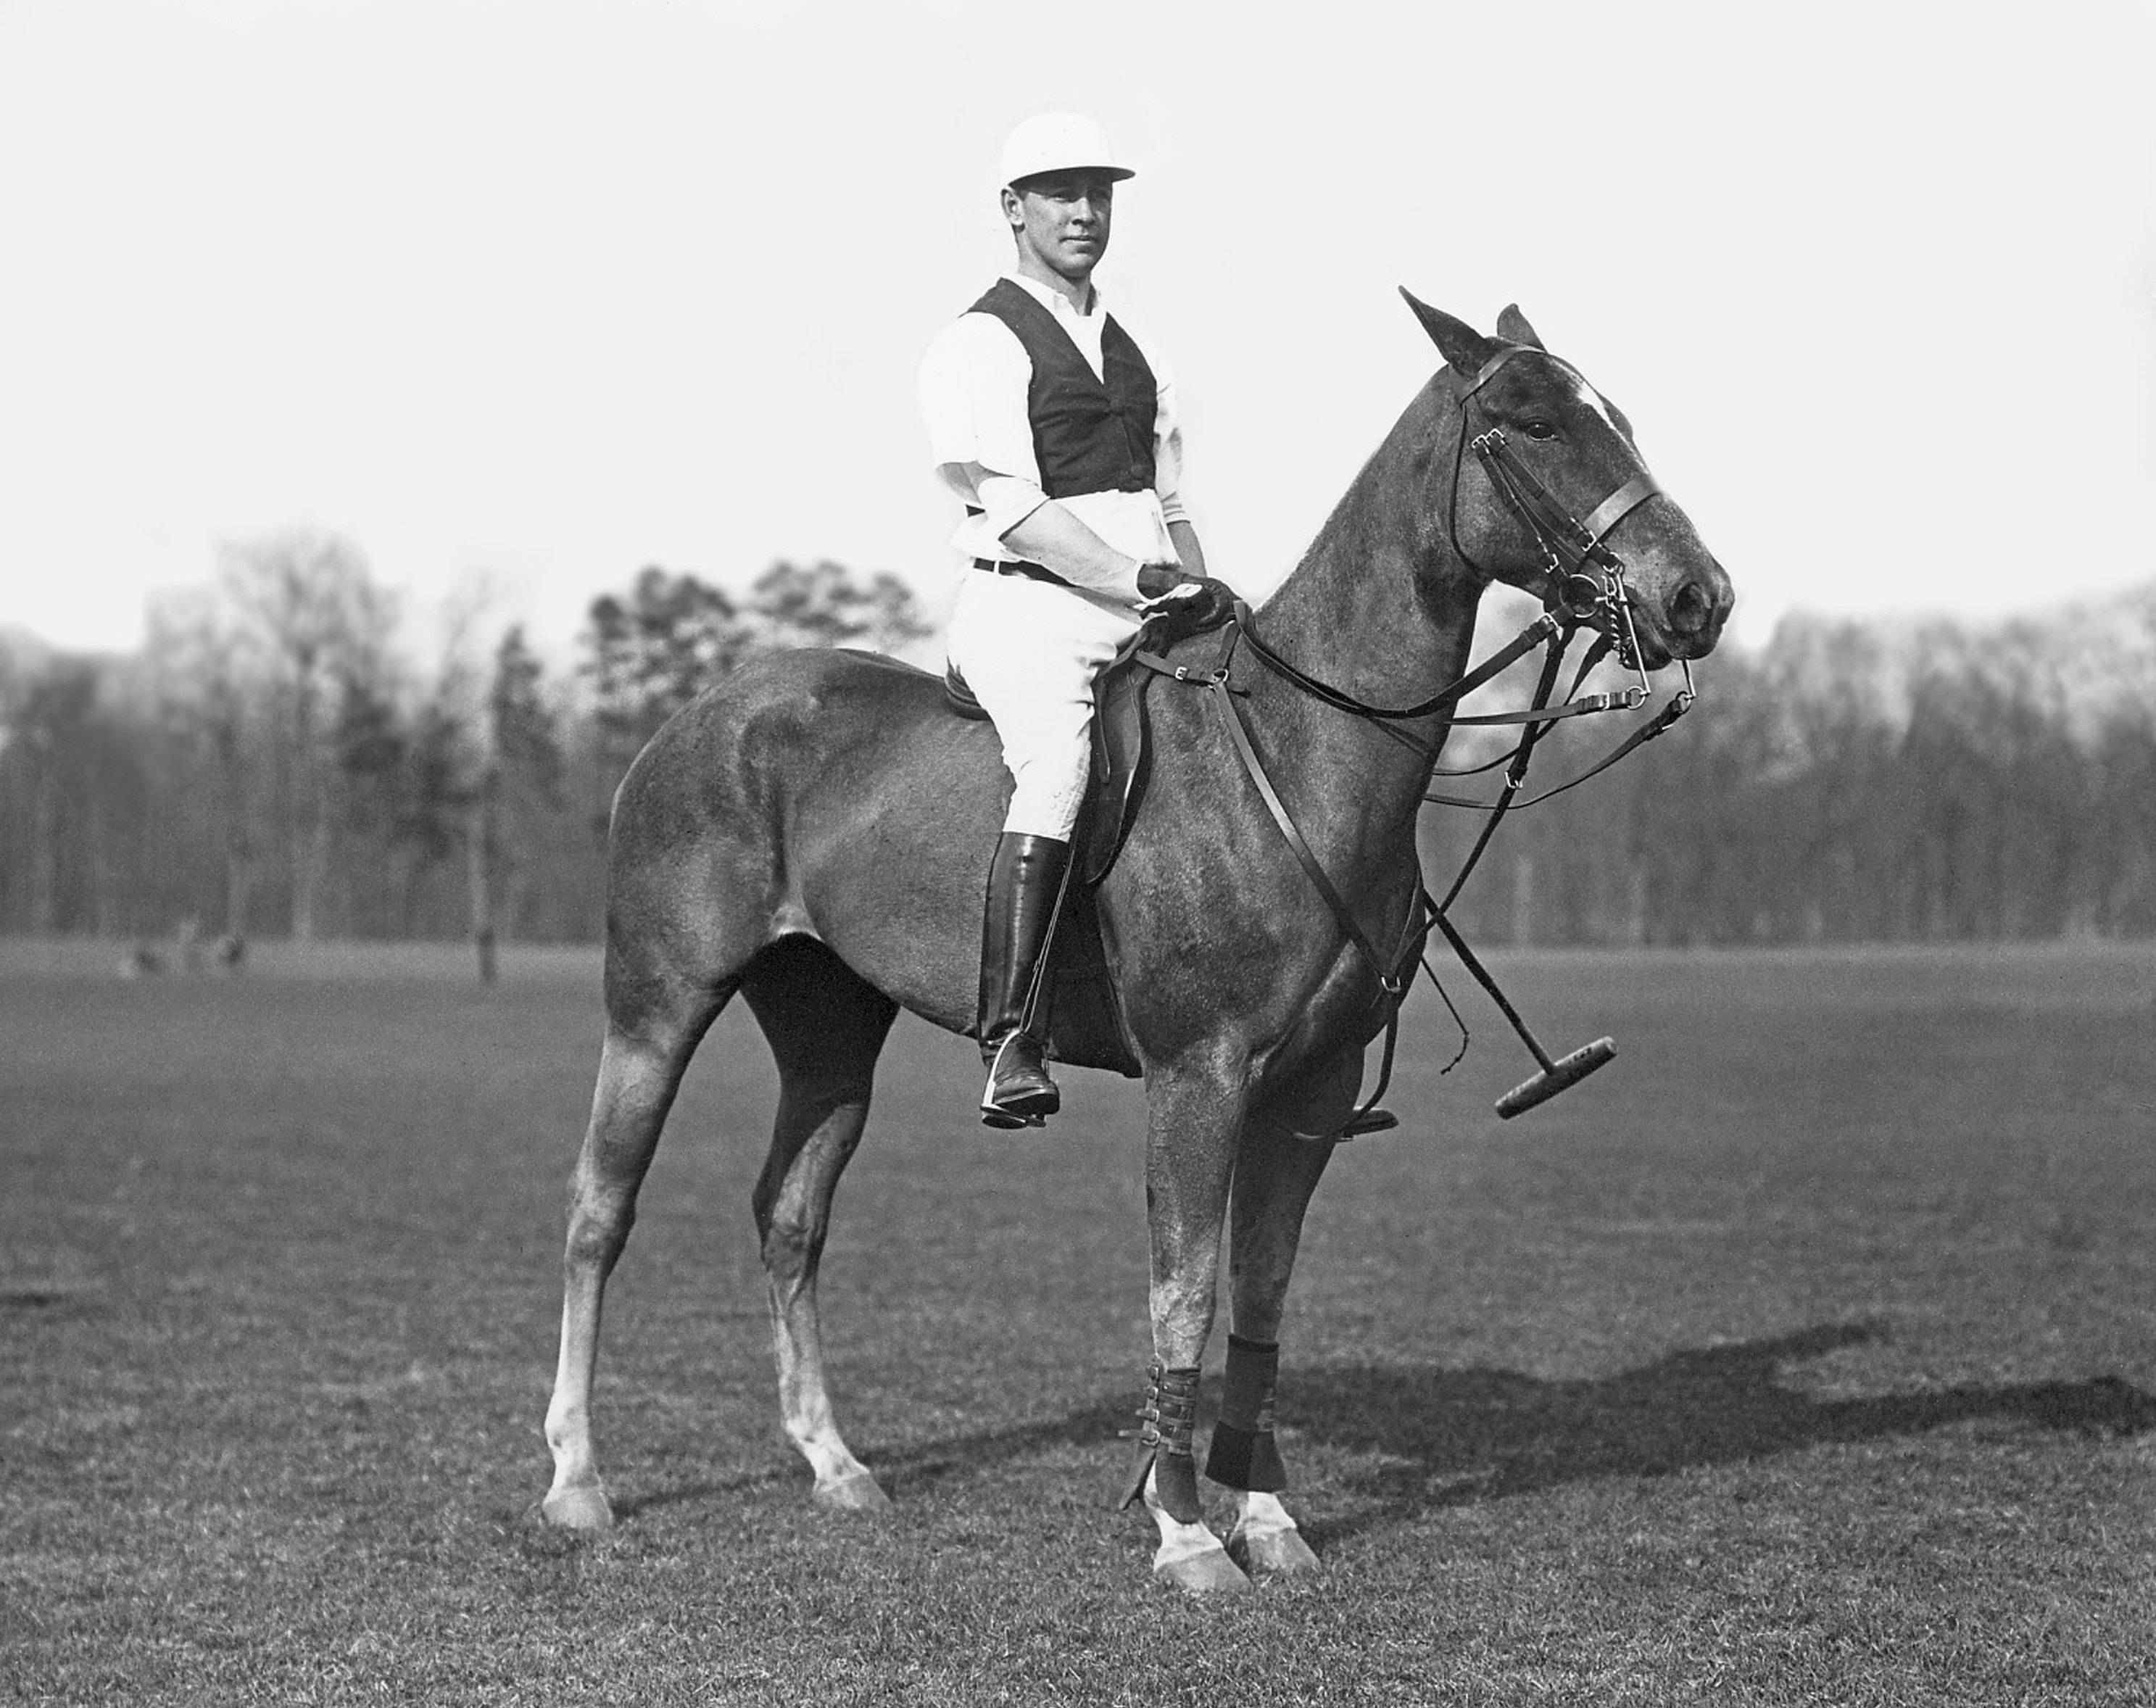 Harry Payne Whitney (Keeneland Library Cook Collection)